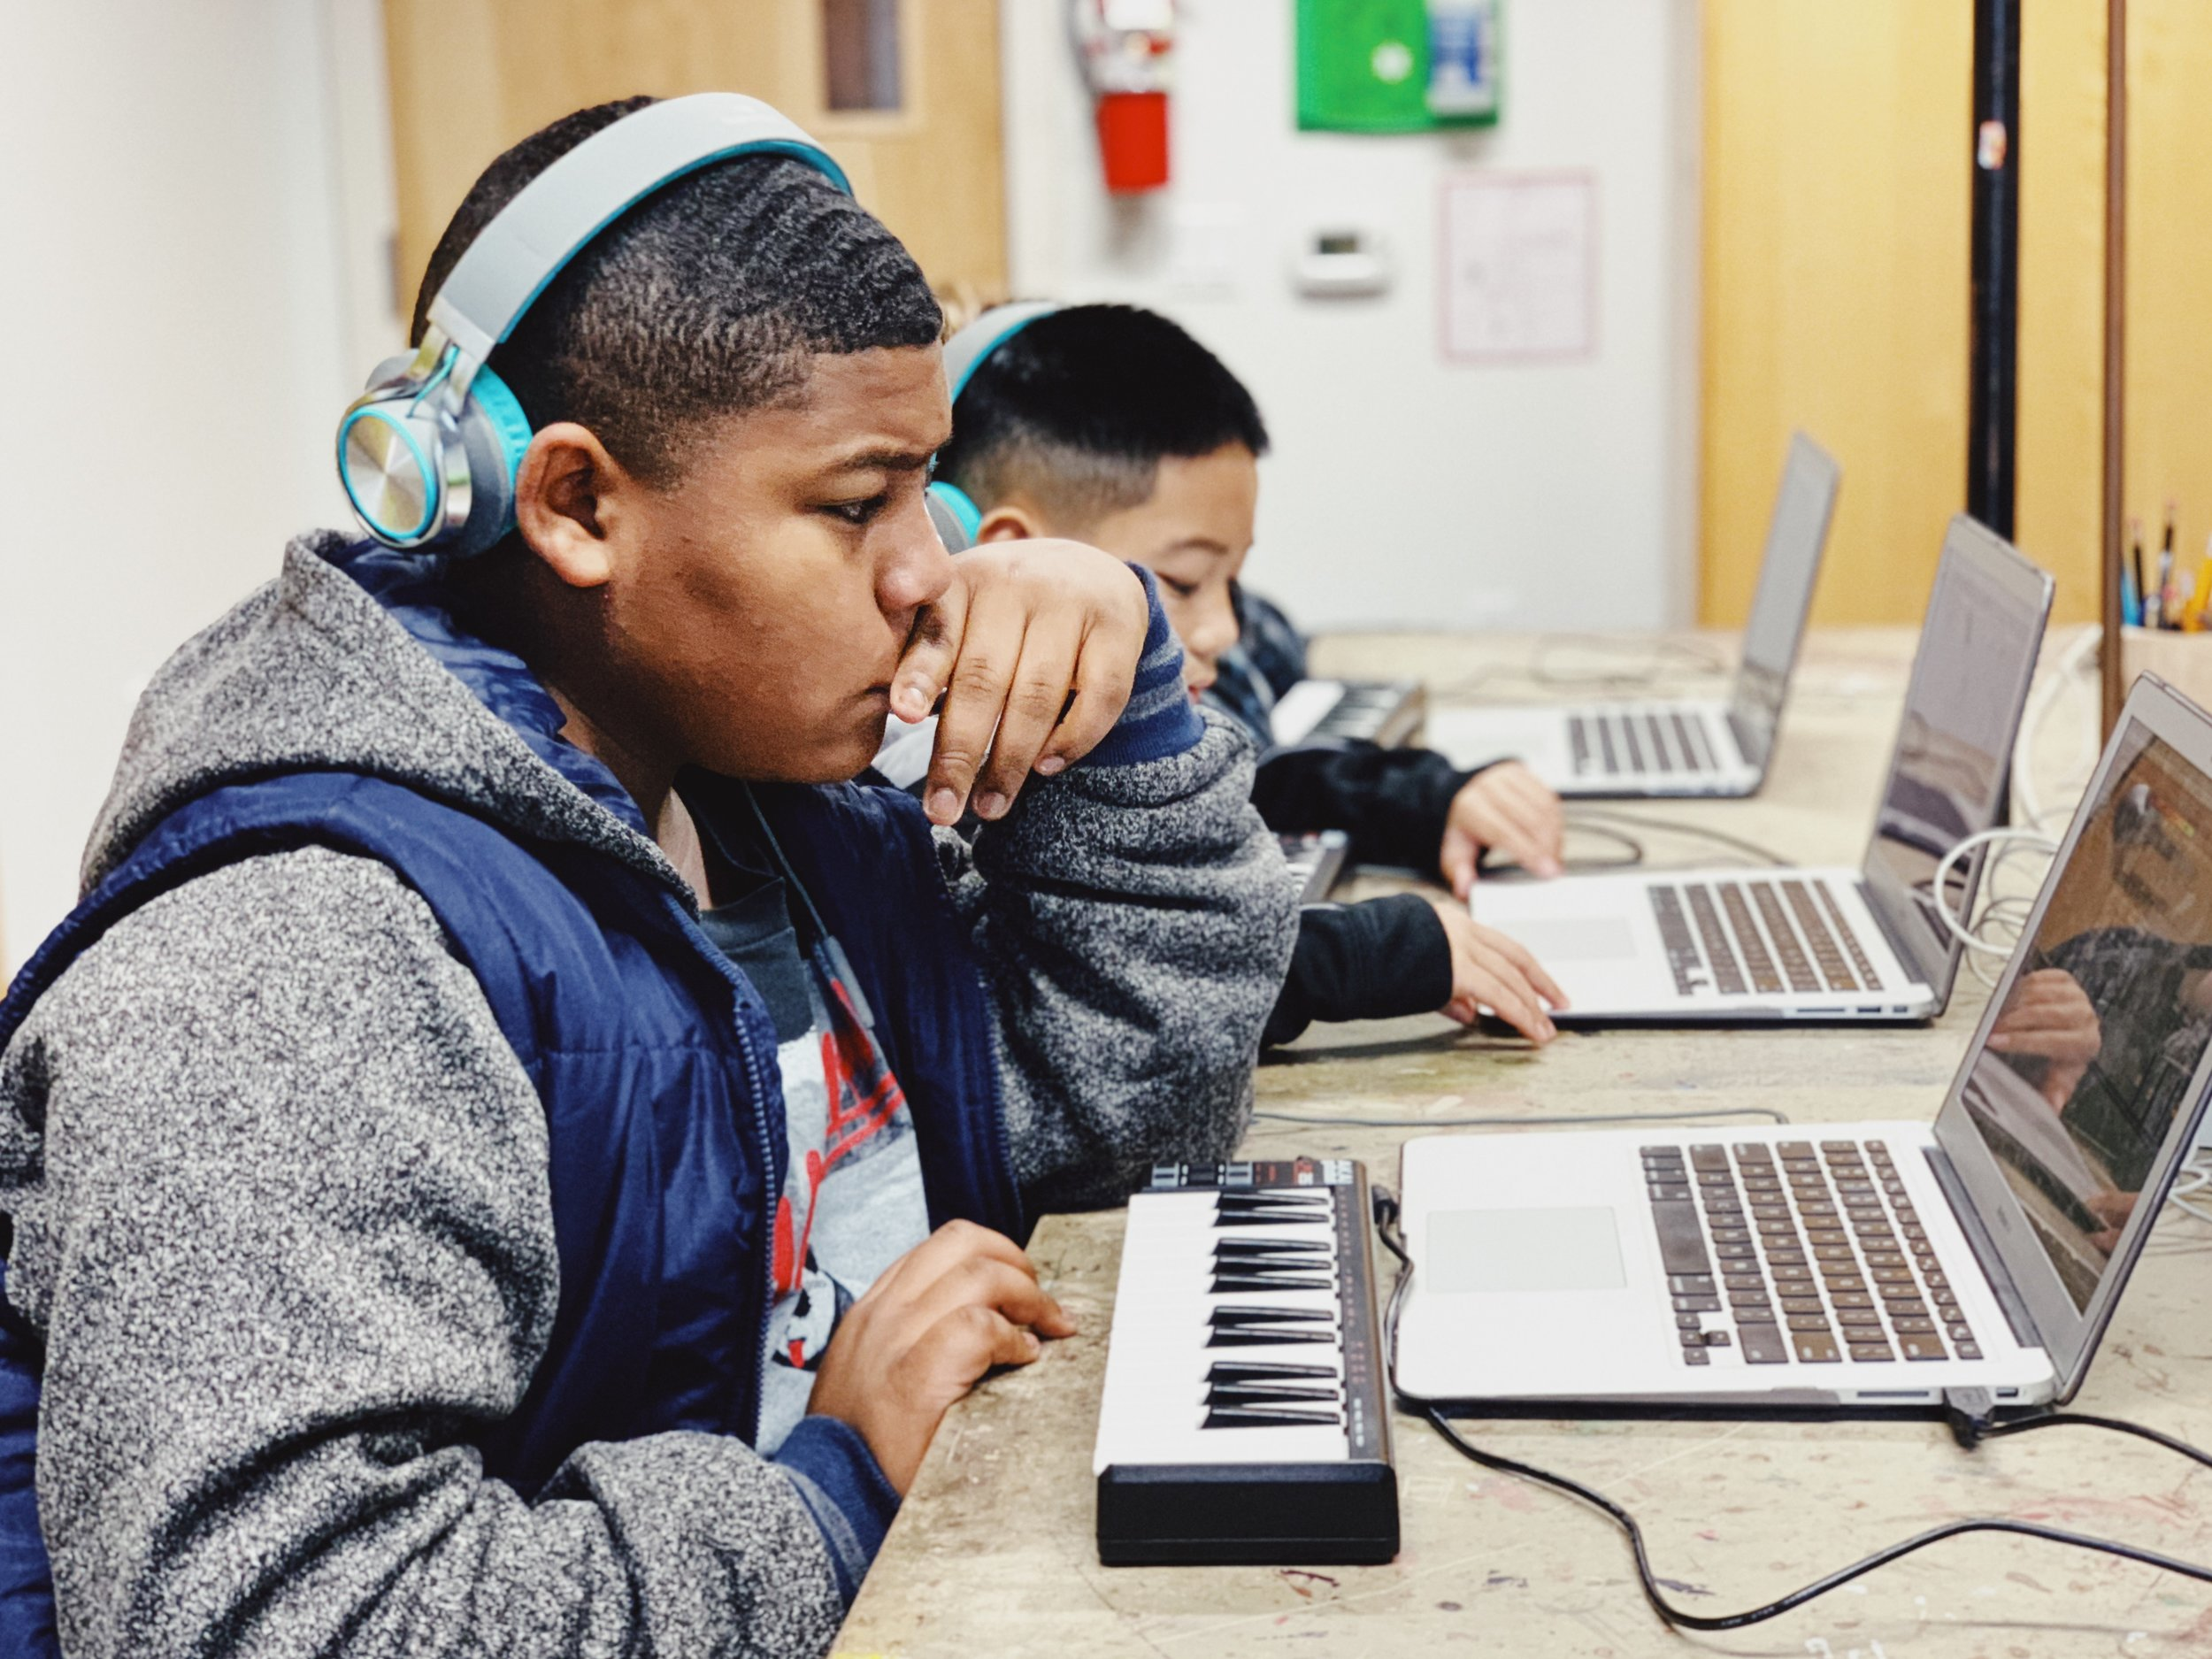 ALL STUDIO CLASSES ARE PAY-WHAT-YOU-CAN! - Studio Classes are hands-on, project-based, 20-hour courses with professionals in creative fields for youth aged 10-15.